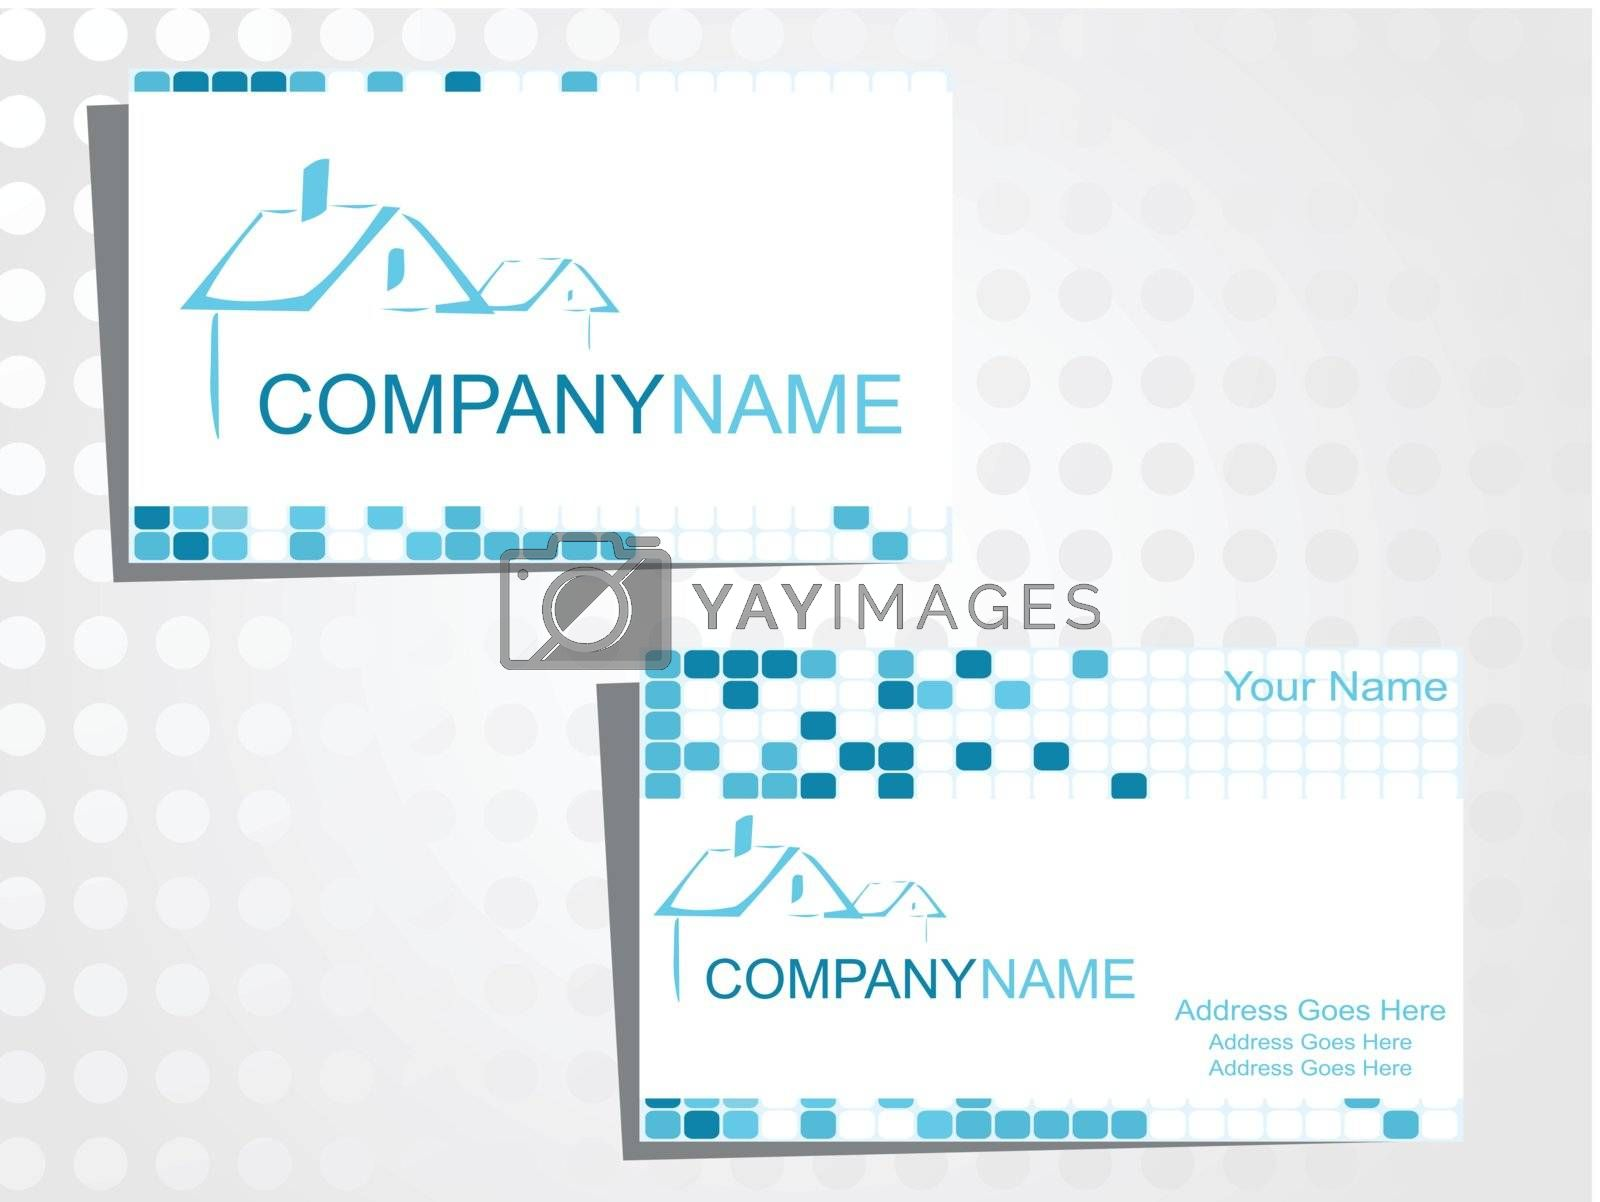 real state business card with logo_31